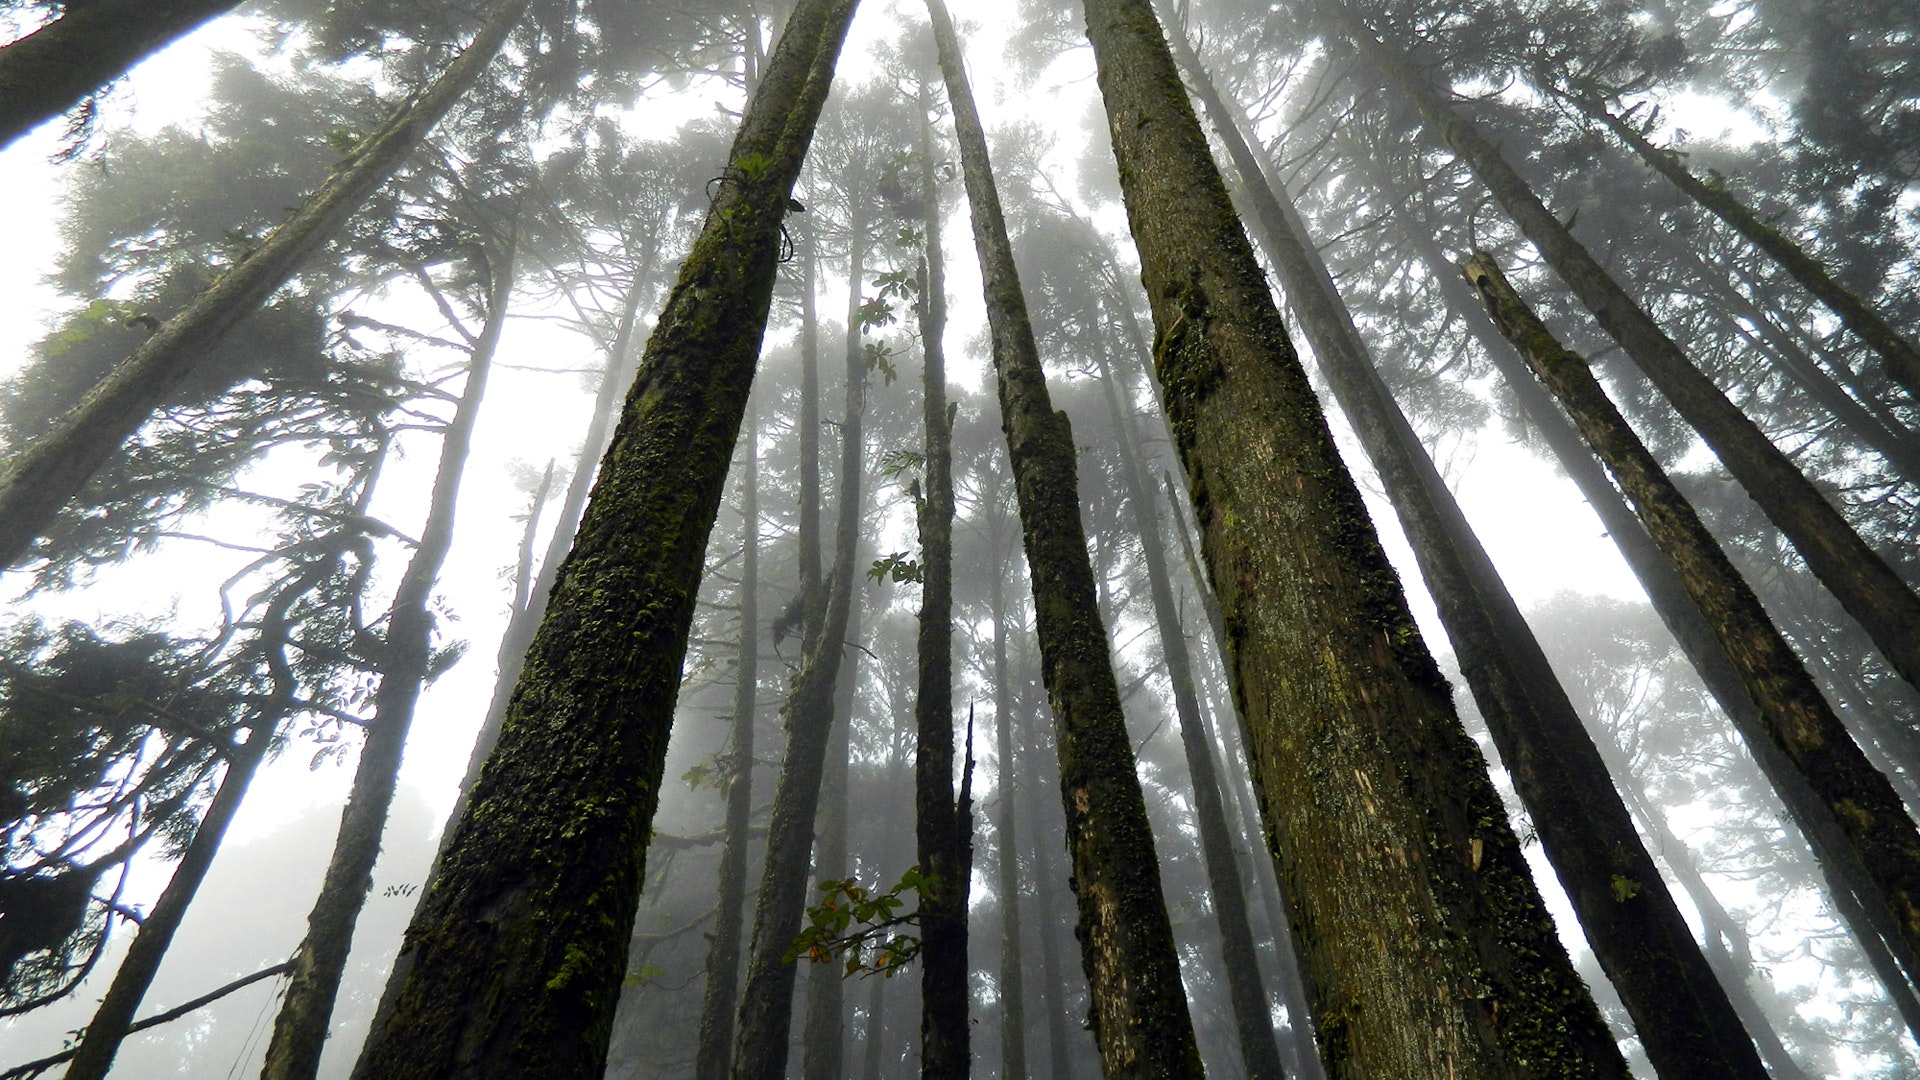 Japan Suicide Forest, Branches, Morning, Trees, Tree trunks, HQ Photo